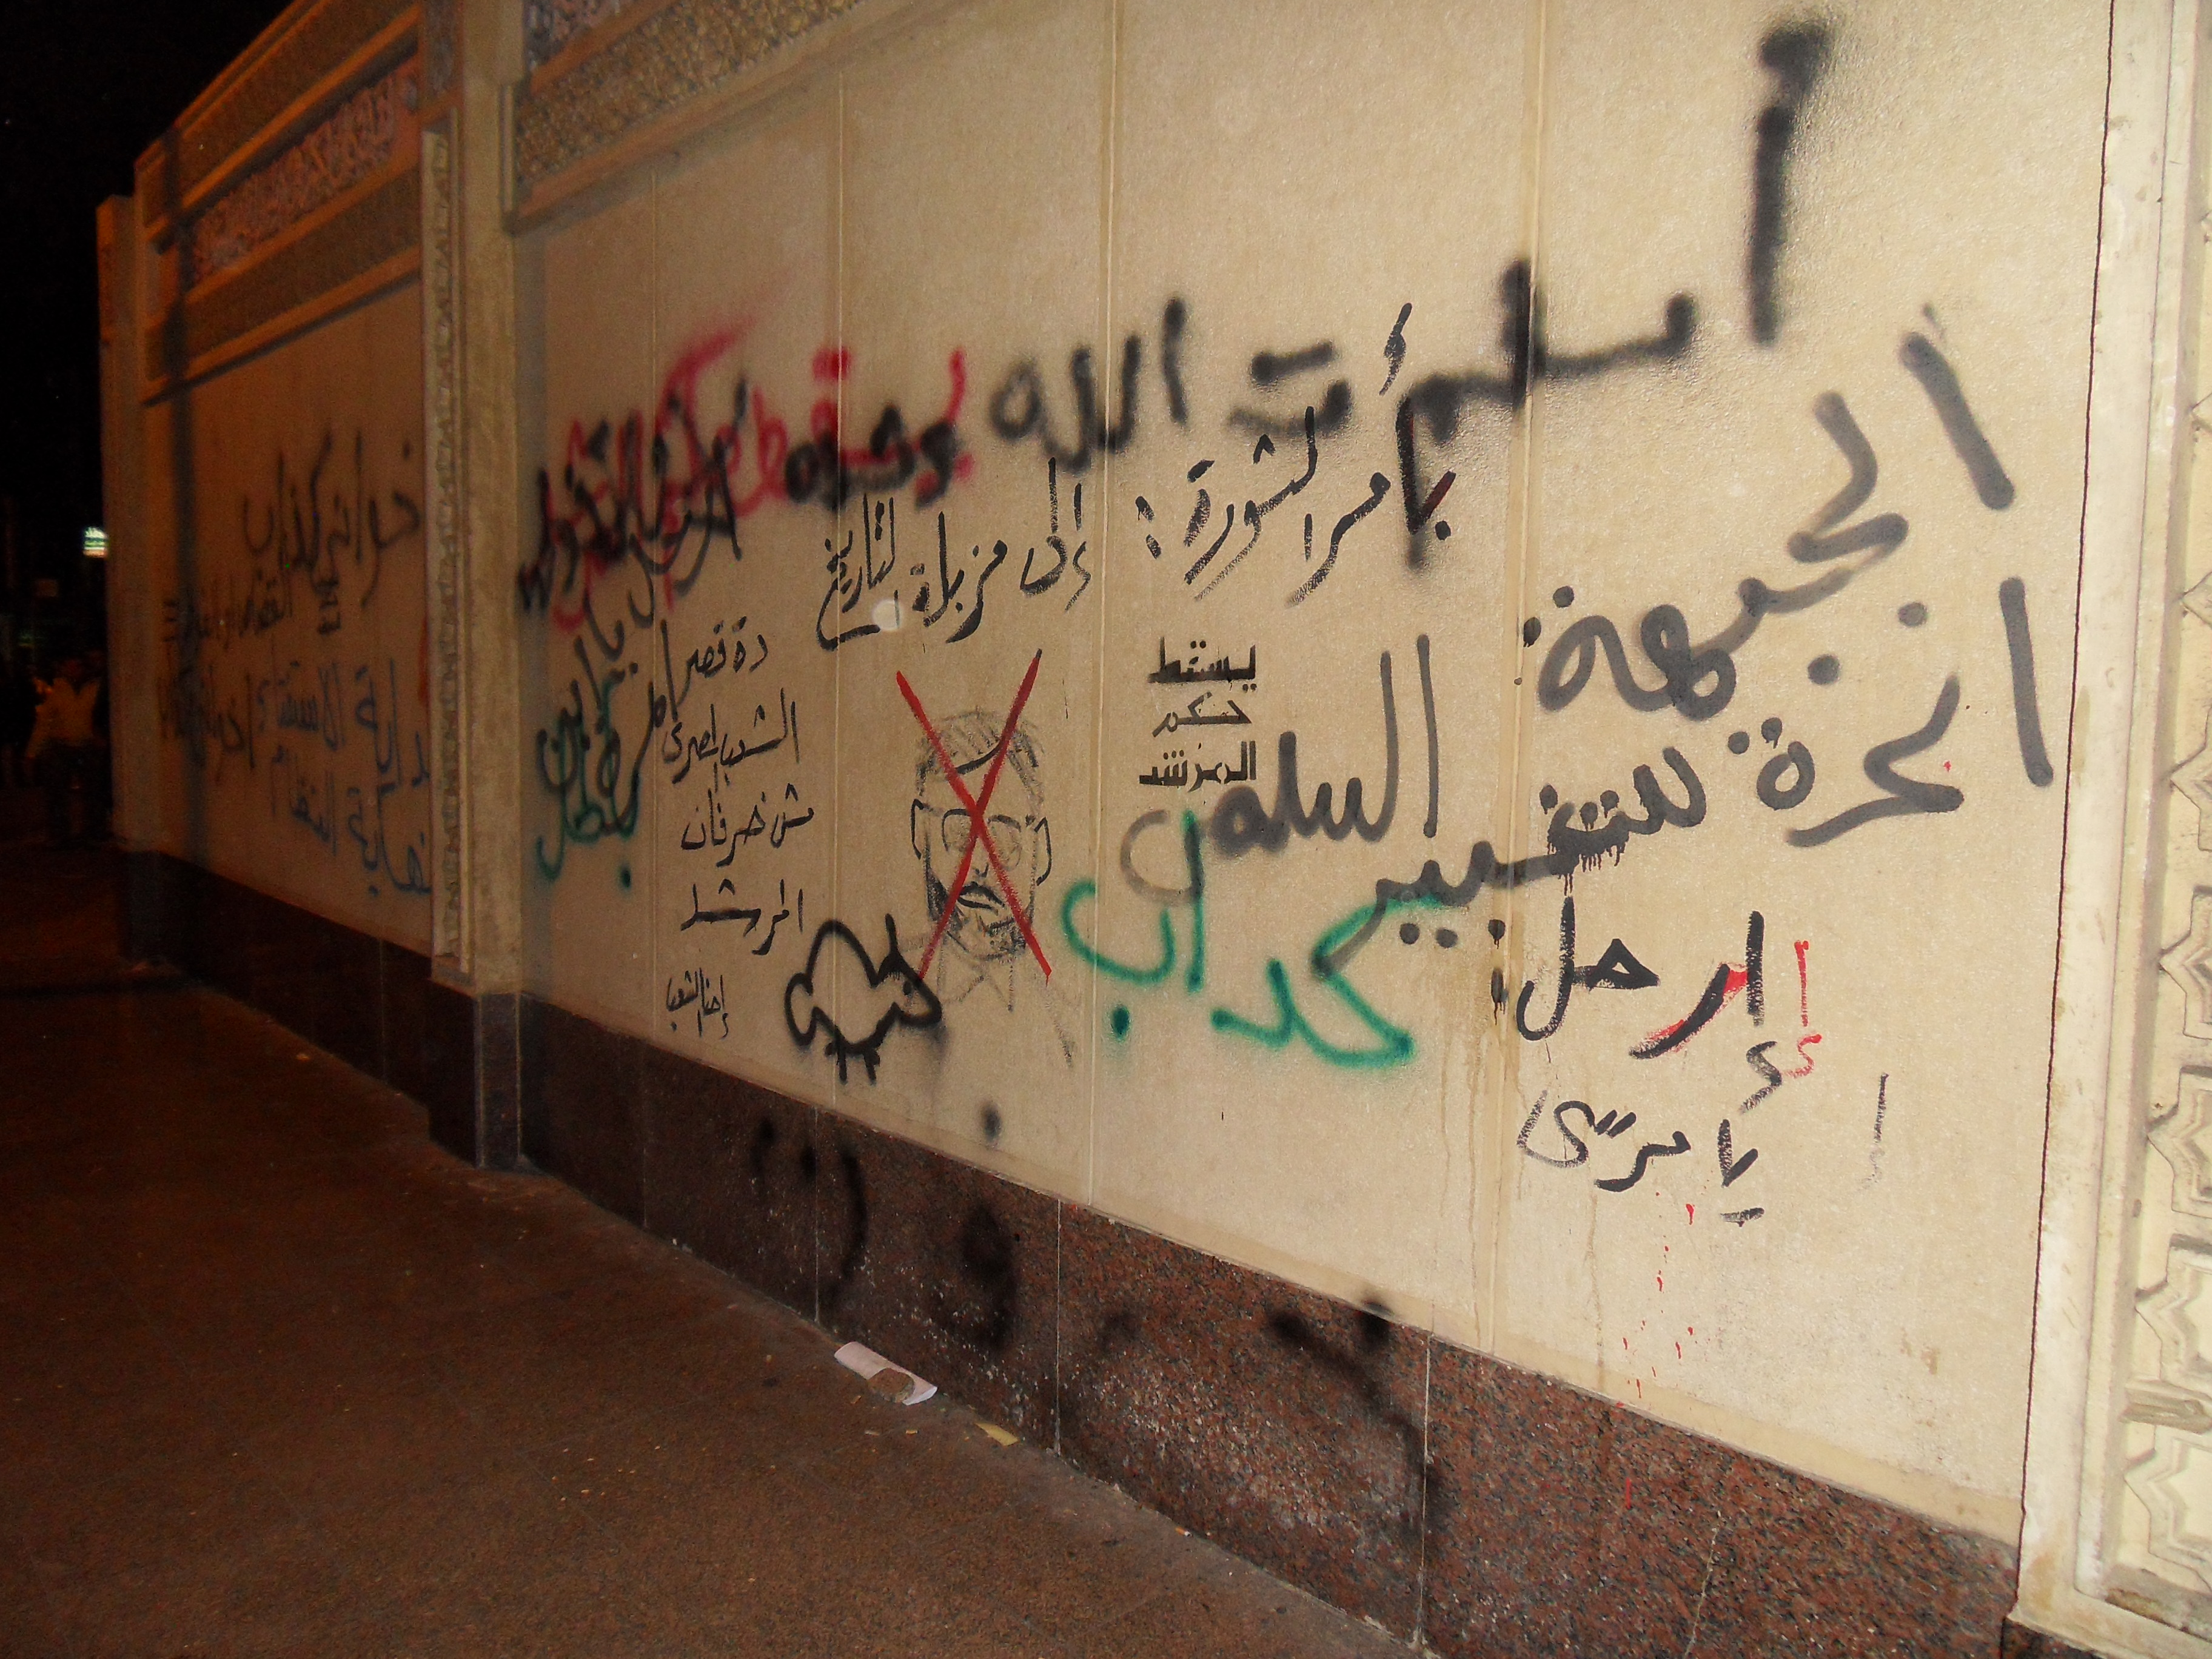 Graffiti on the walls of the Palace.